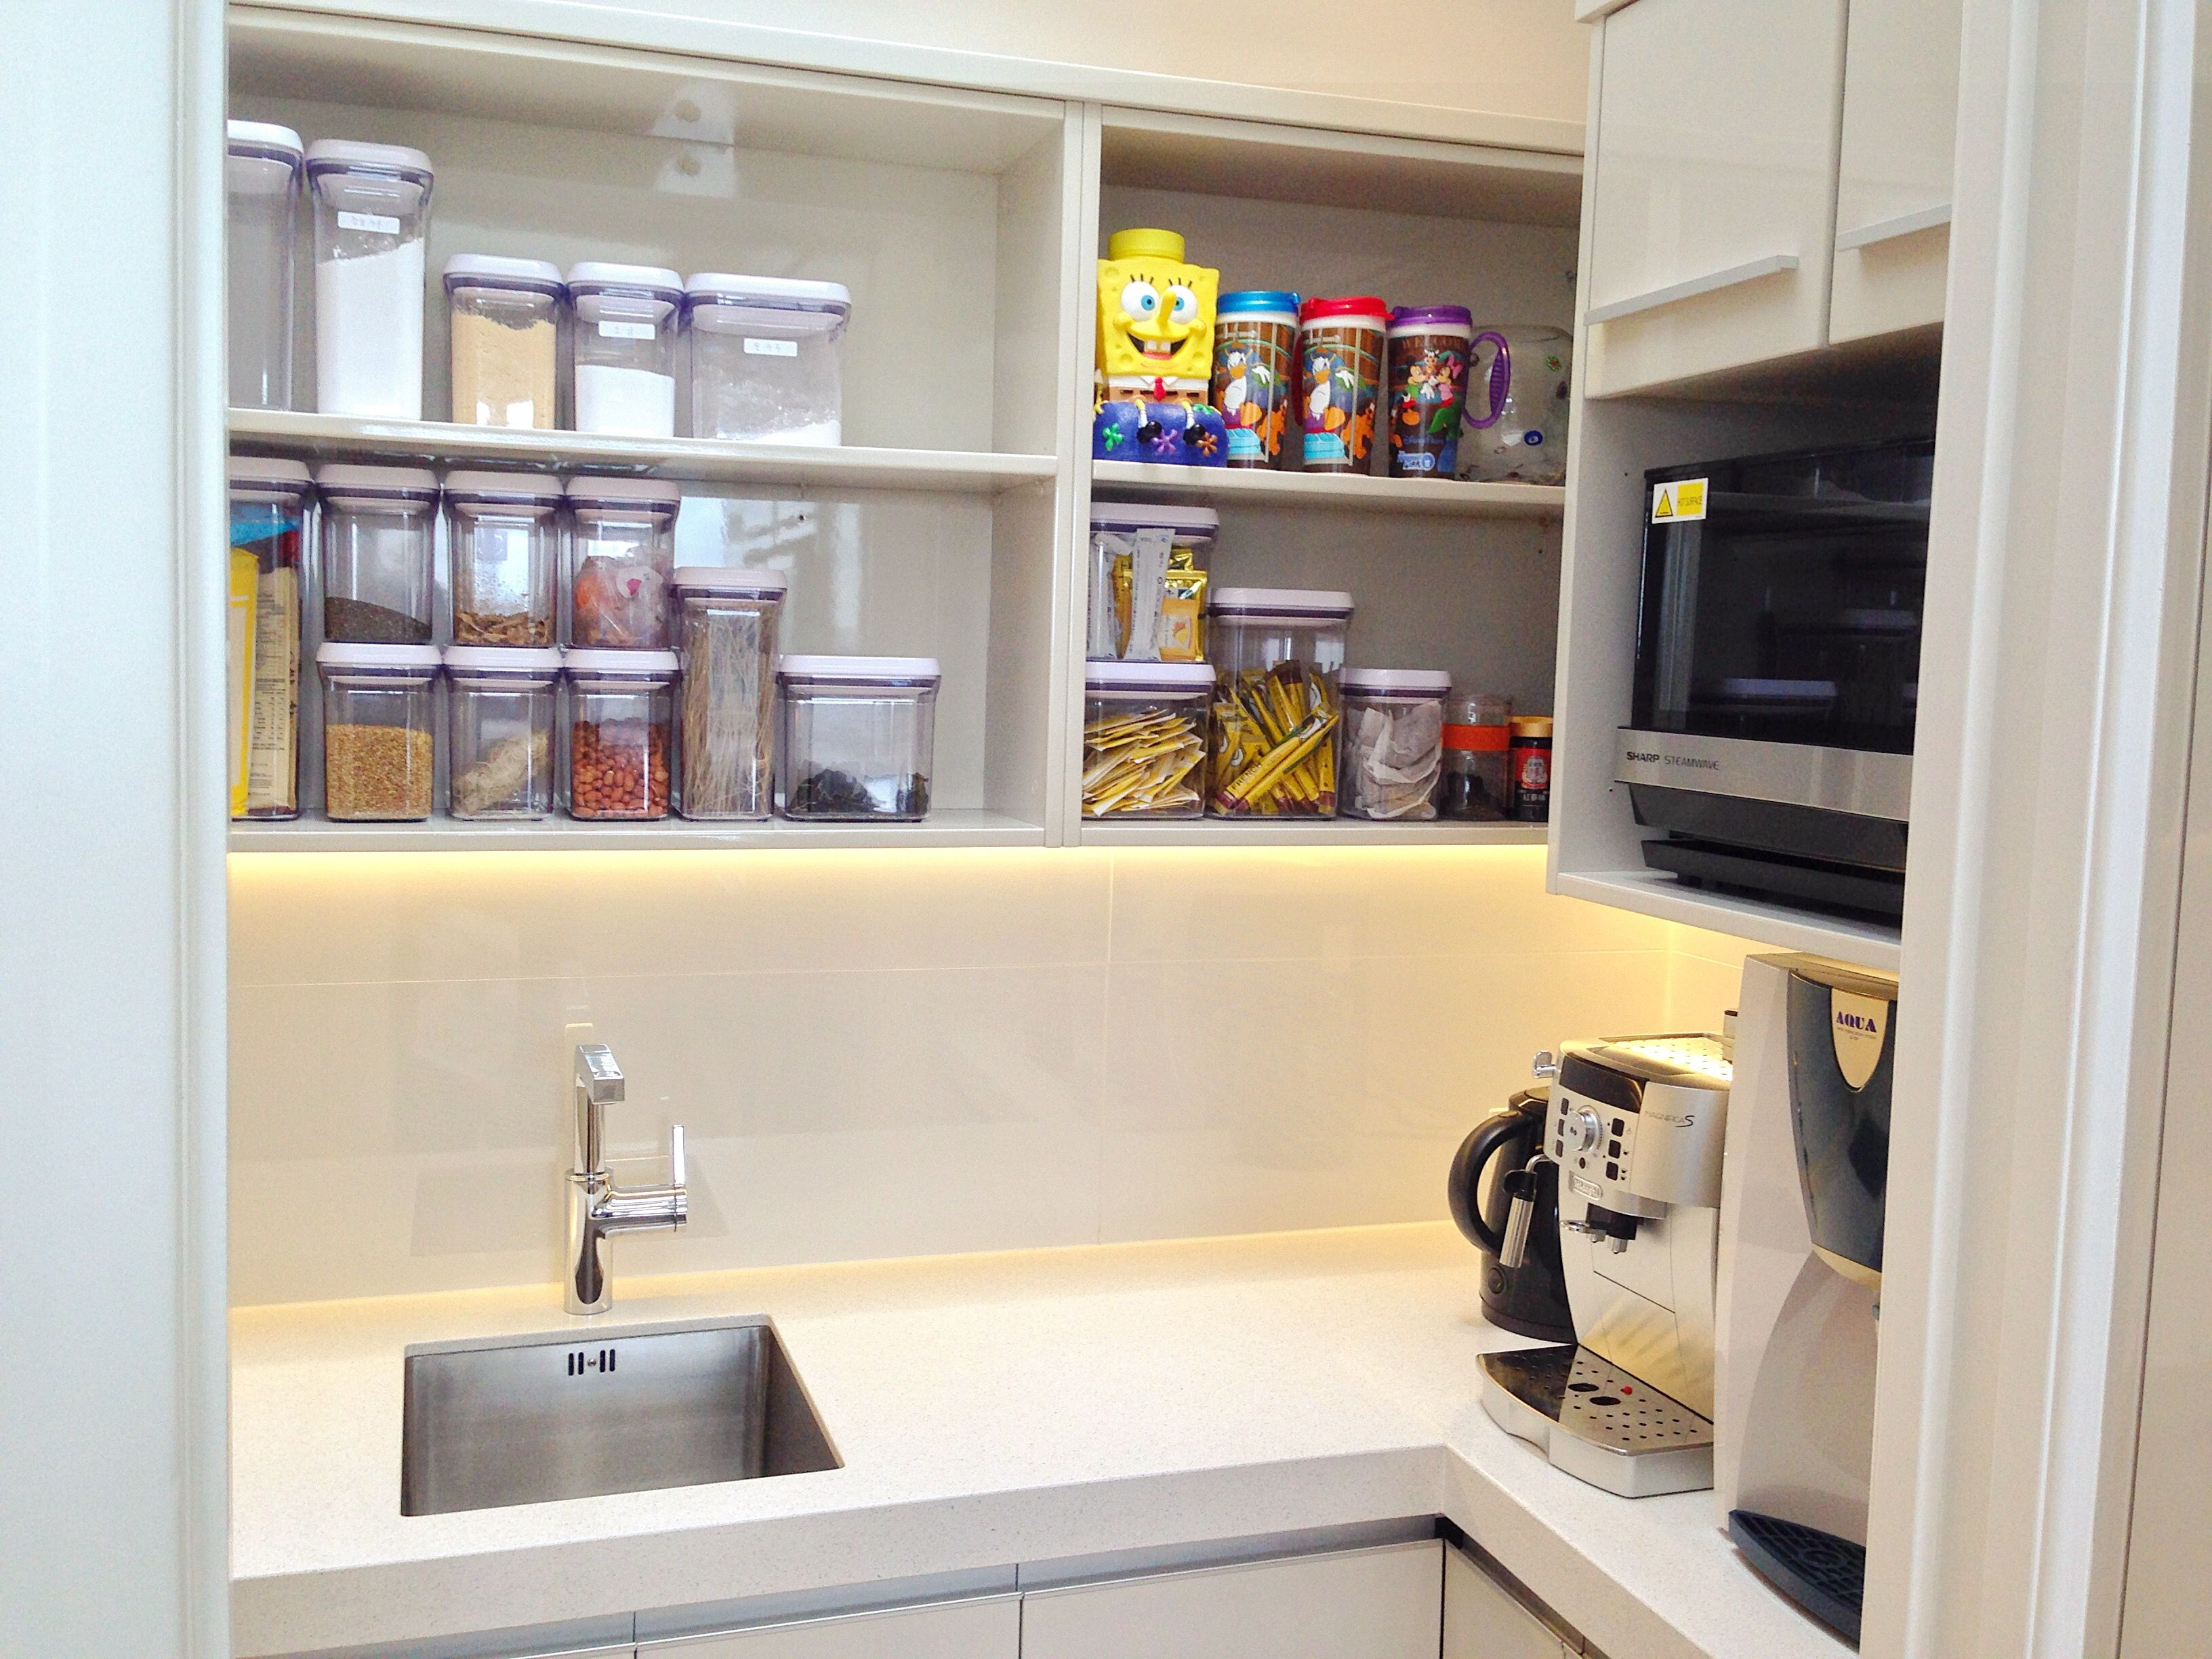 53674d6d8e26a779b5c61e840d101e90 Pantry Ideas Kitchen Amp Nook on kitchen pantry designs, kitchen pantry with small floor plans, kitchen slide out pantry shelves, kitchen with no pantry,